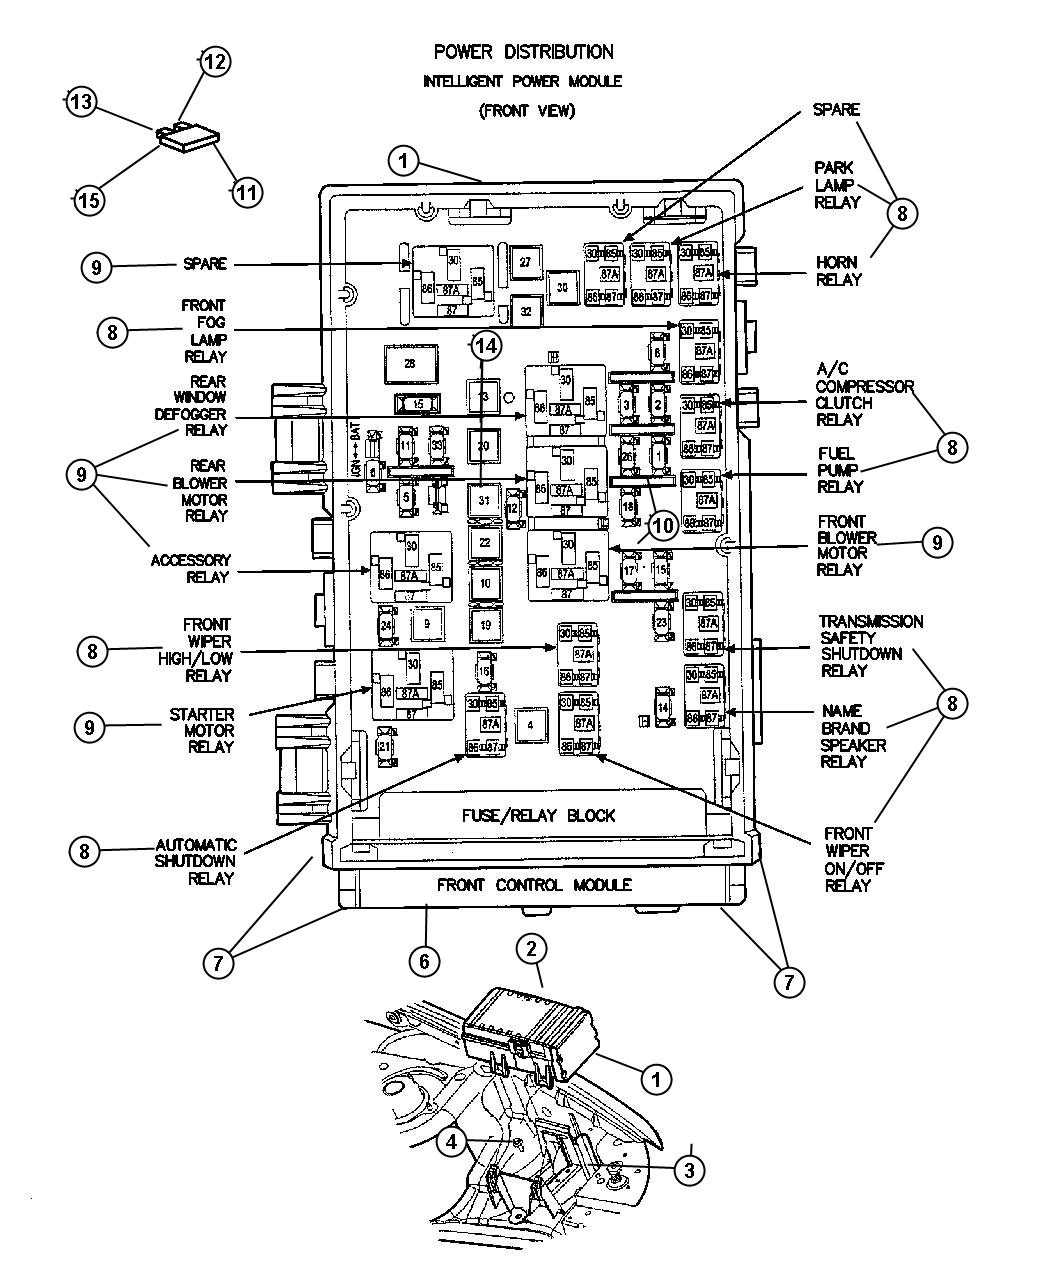 hight resolution of 2001 chrysler voyager fuse box diagram 2001 get free 2003 chevy express fuse box diagram 2003